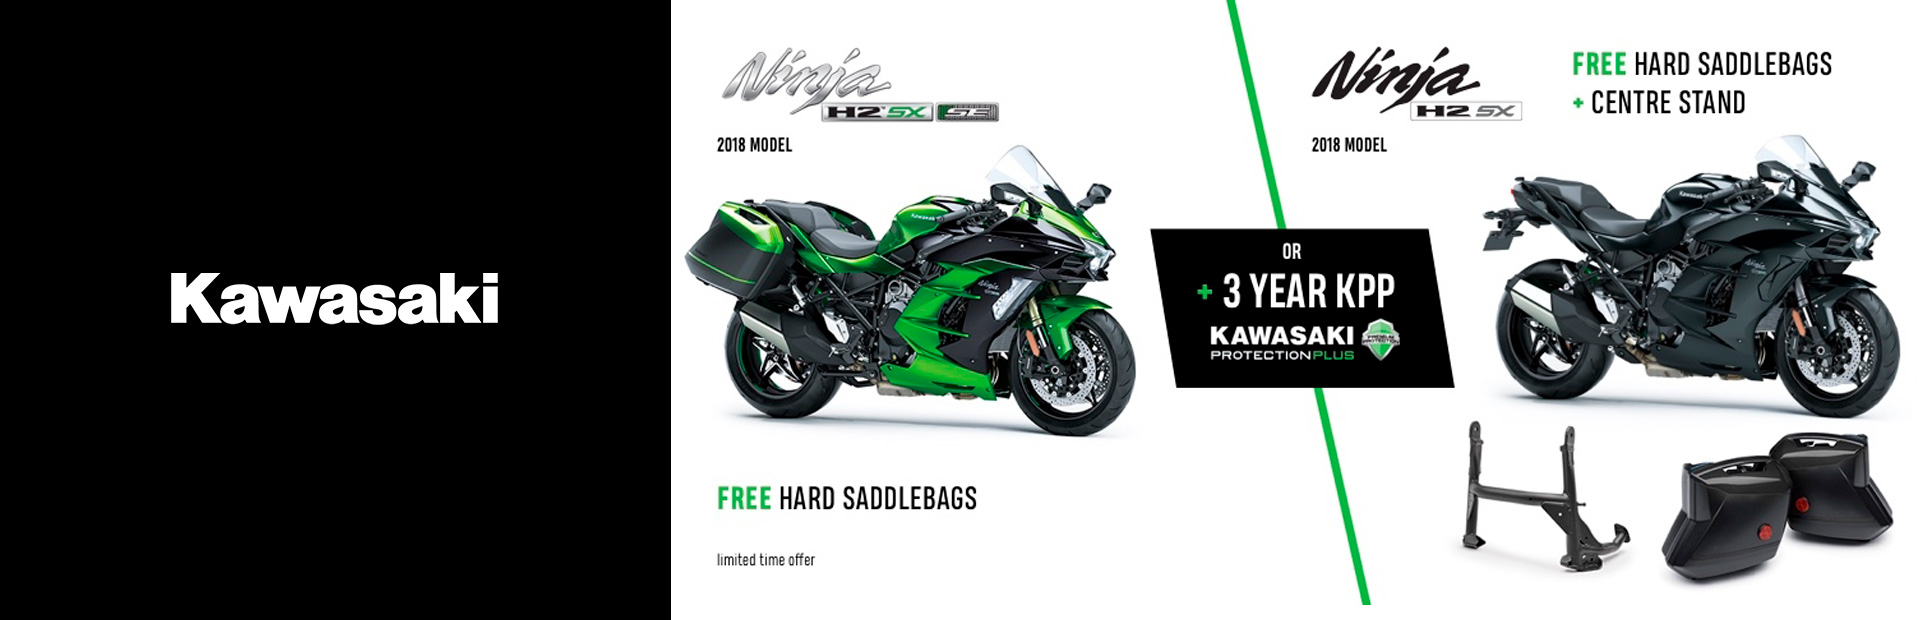 Kawasaki: H2 SX Accessories Offer